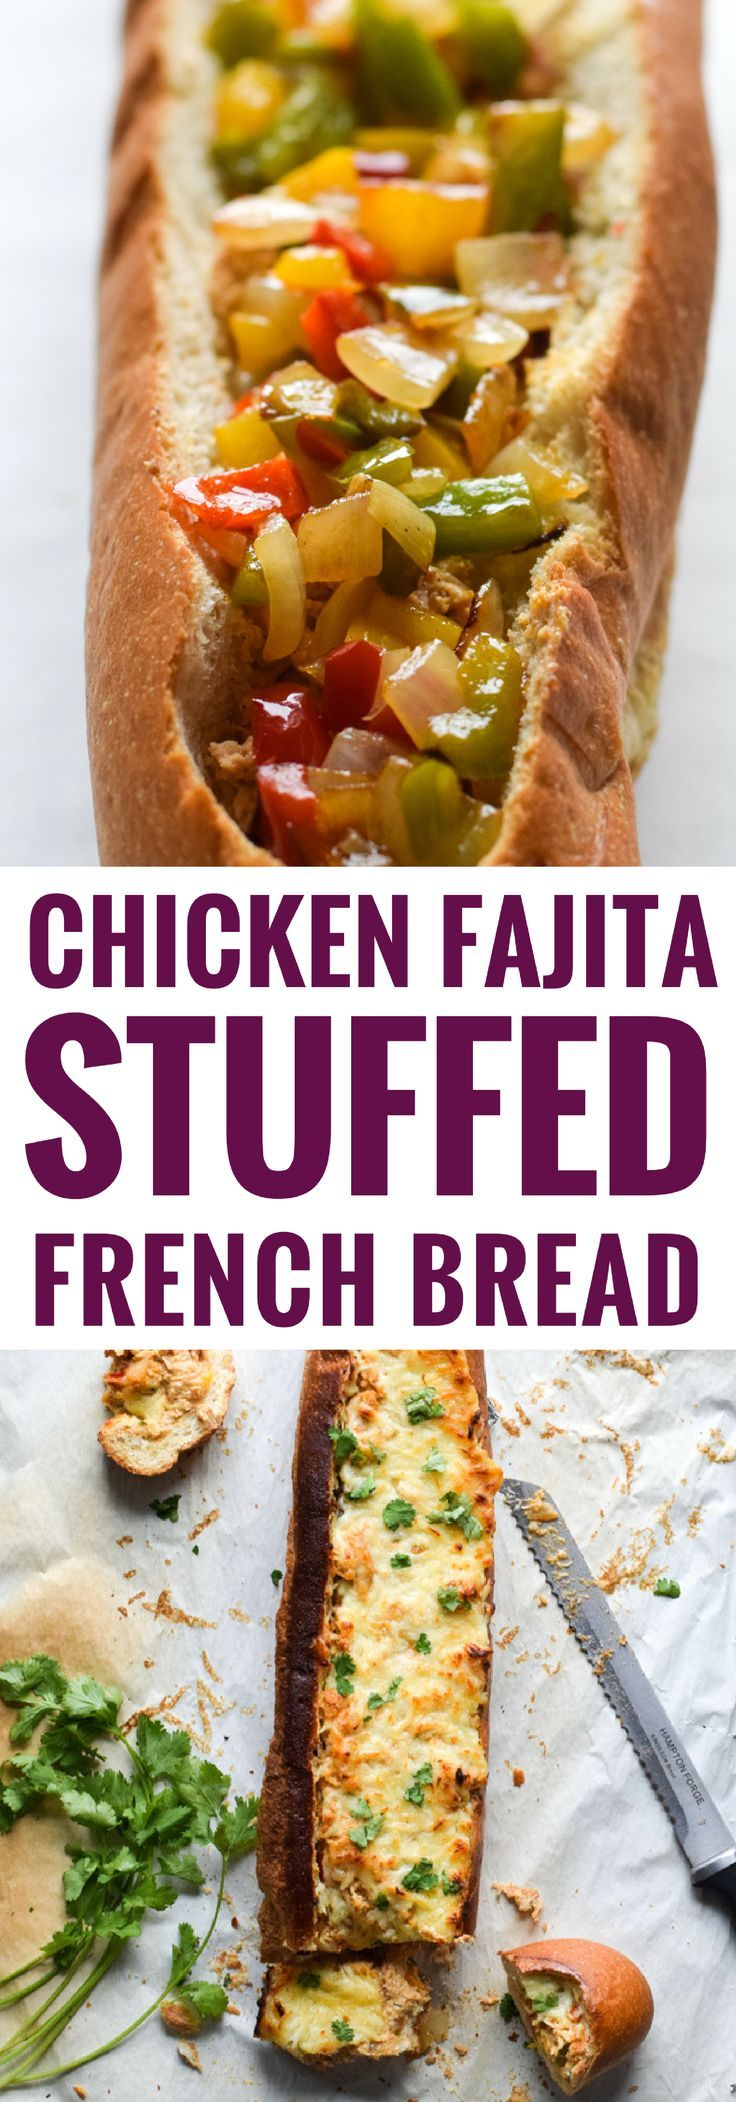 A crowd favorite, this Chicken Fajita Stuffed French Bread is a creamy, cheesy, and super flavorful appetizer that's perfect for parties and game day!